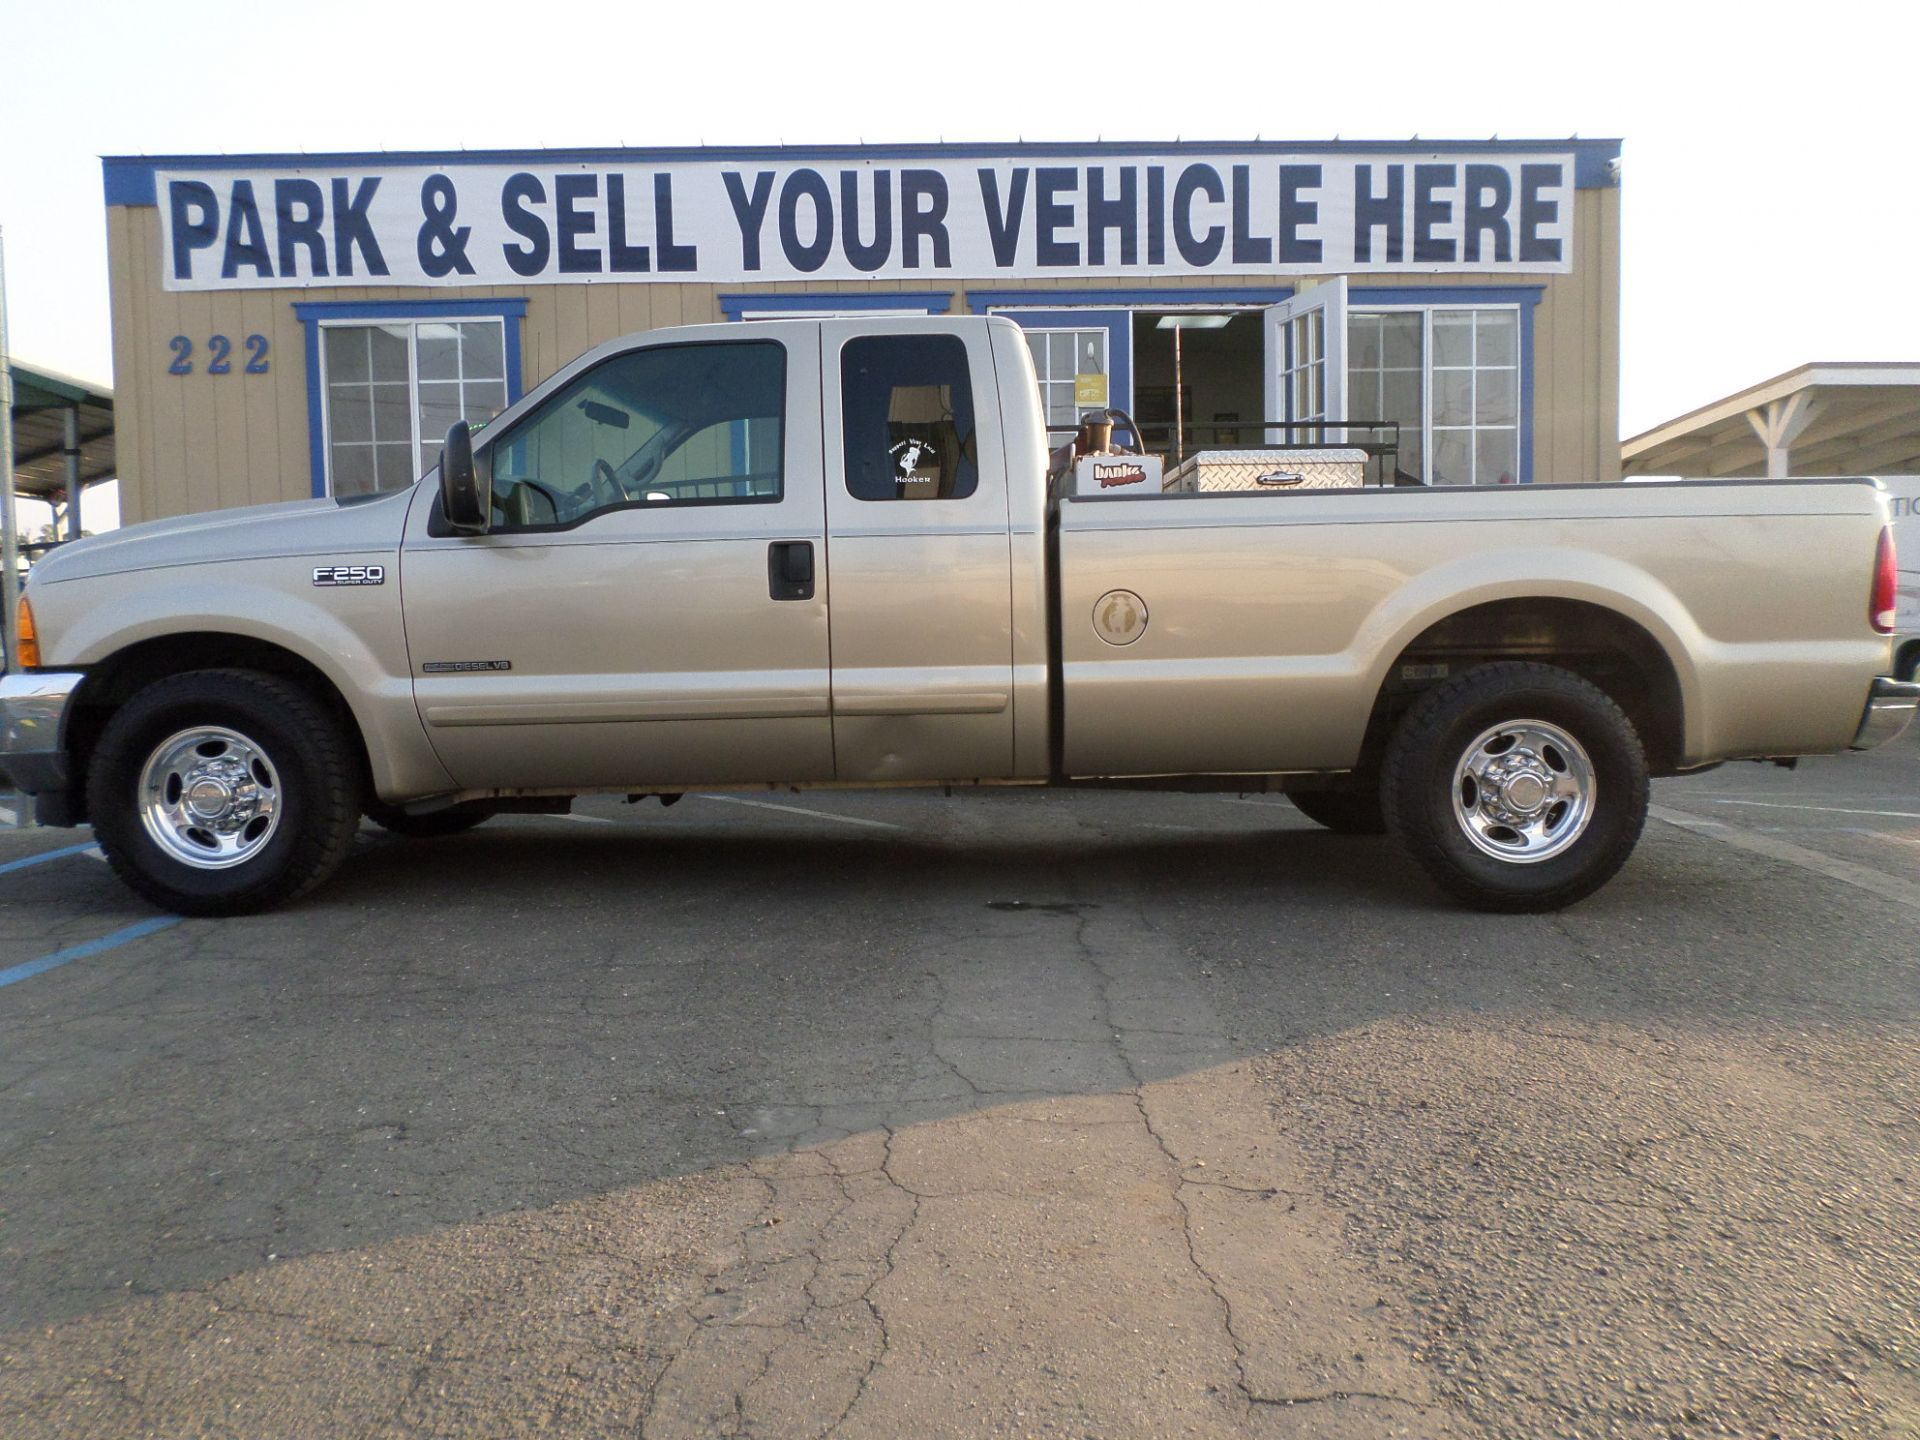 2001 ford f 250 lariat 4x4 super cab diesel for sale by owner